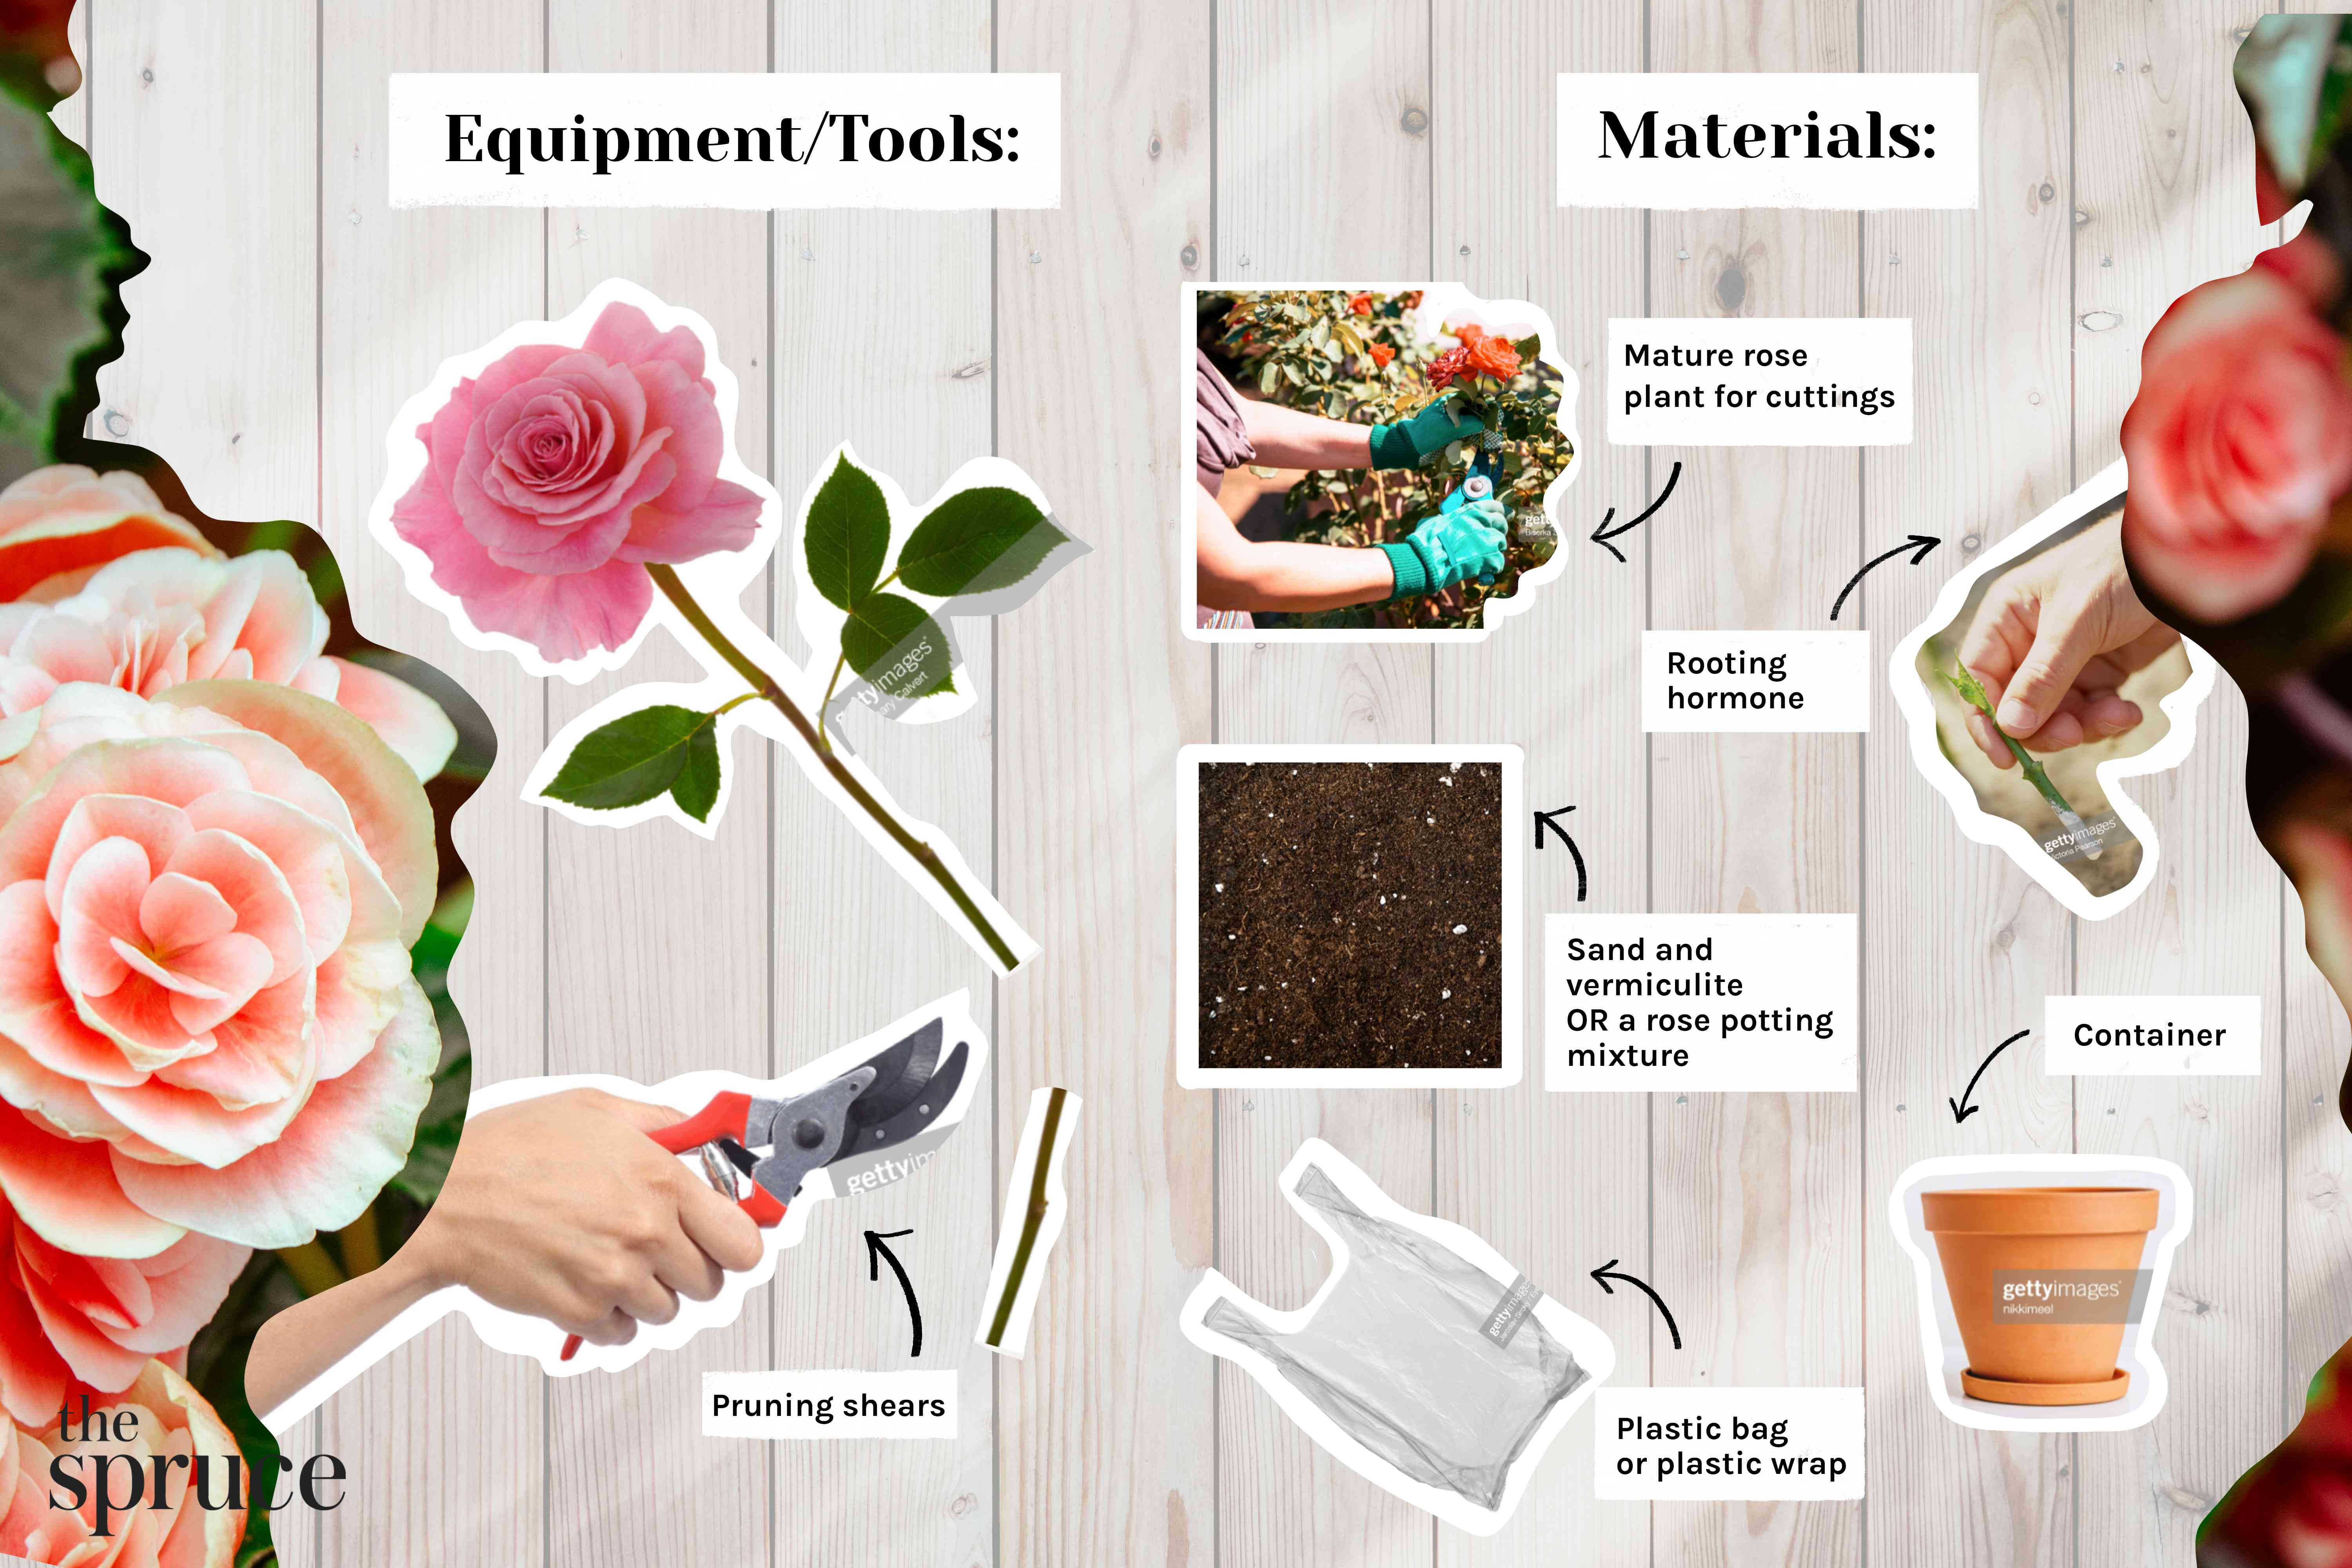 Materials and tools photo composite to grow roses from cuttings